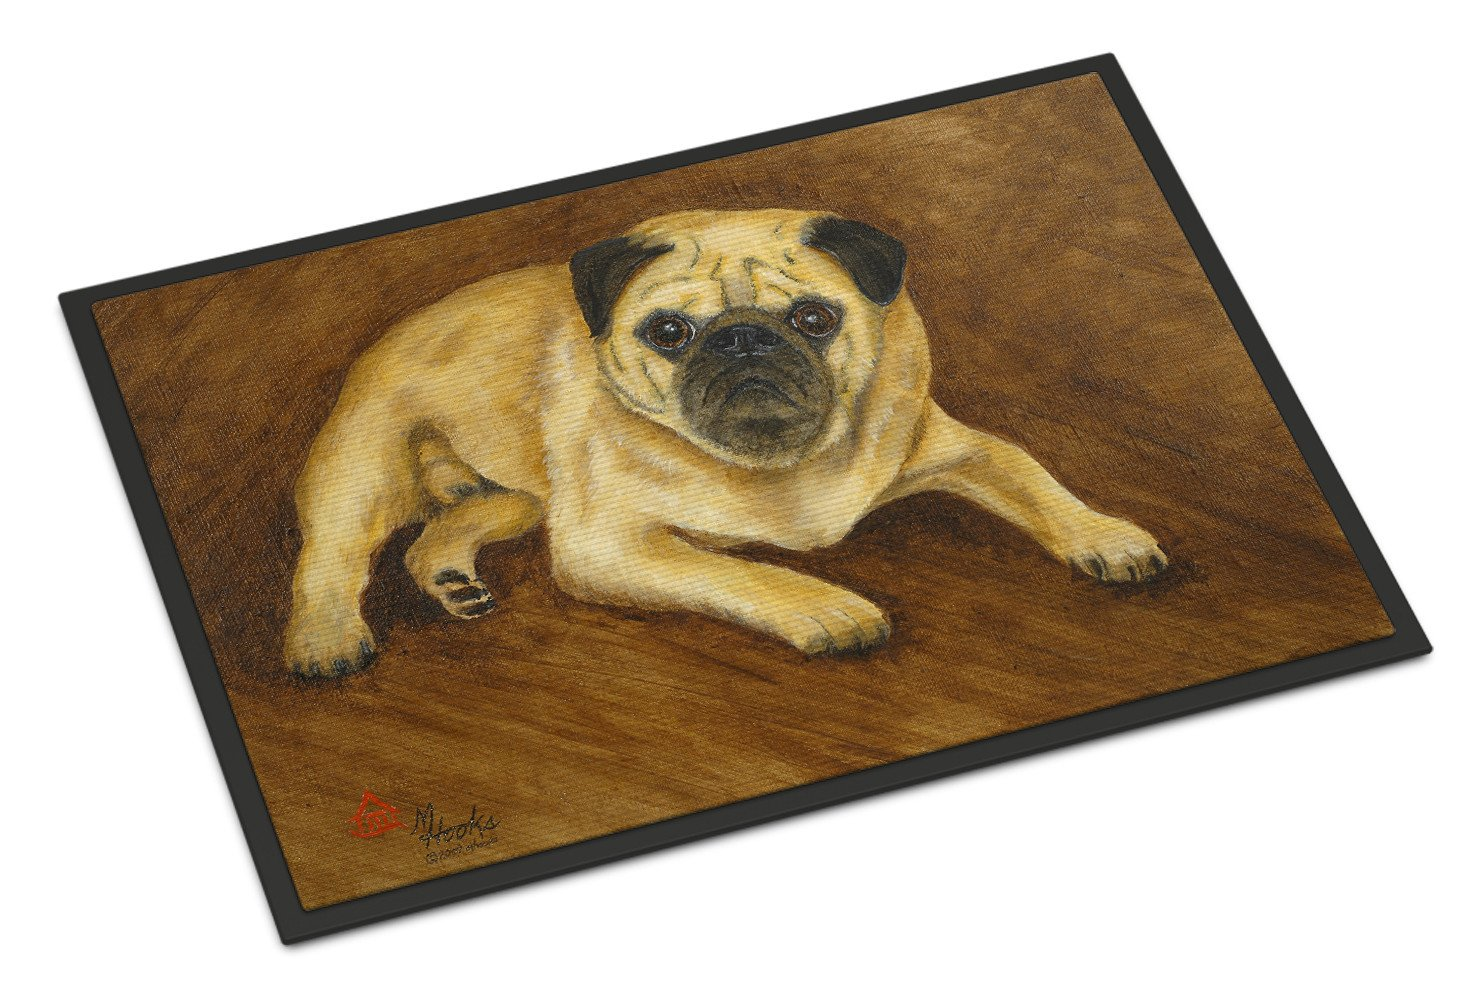 Fawn Pug Roscoe Indoor or Outdoor Mat 18x27 MH1062MAT - the-store.com